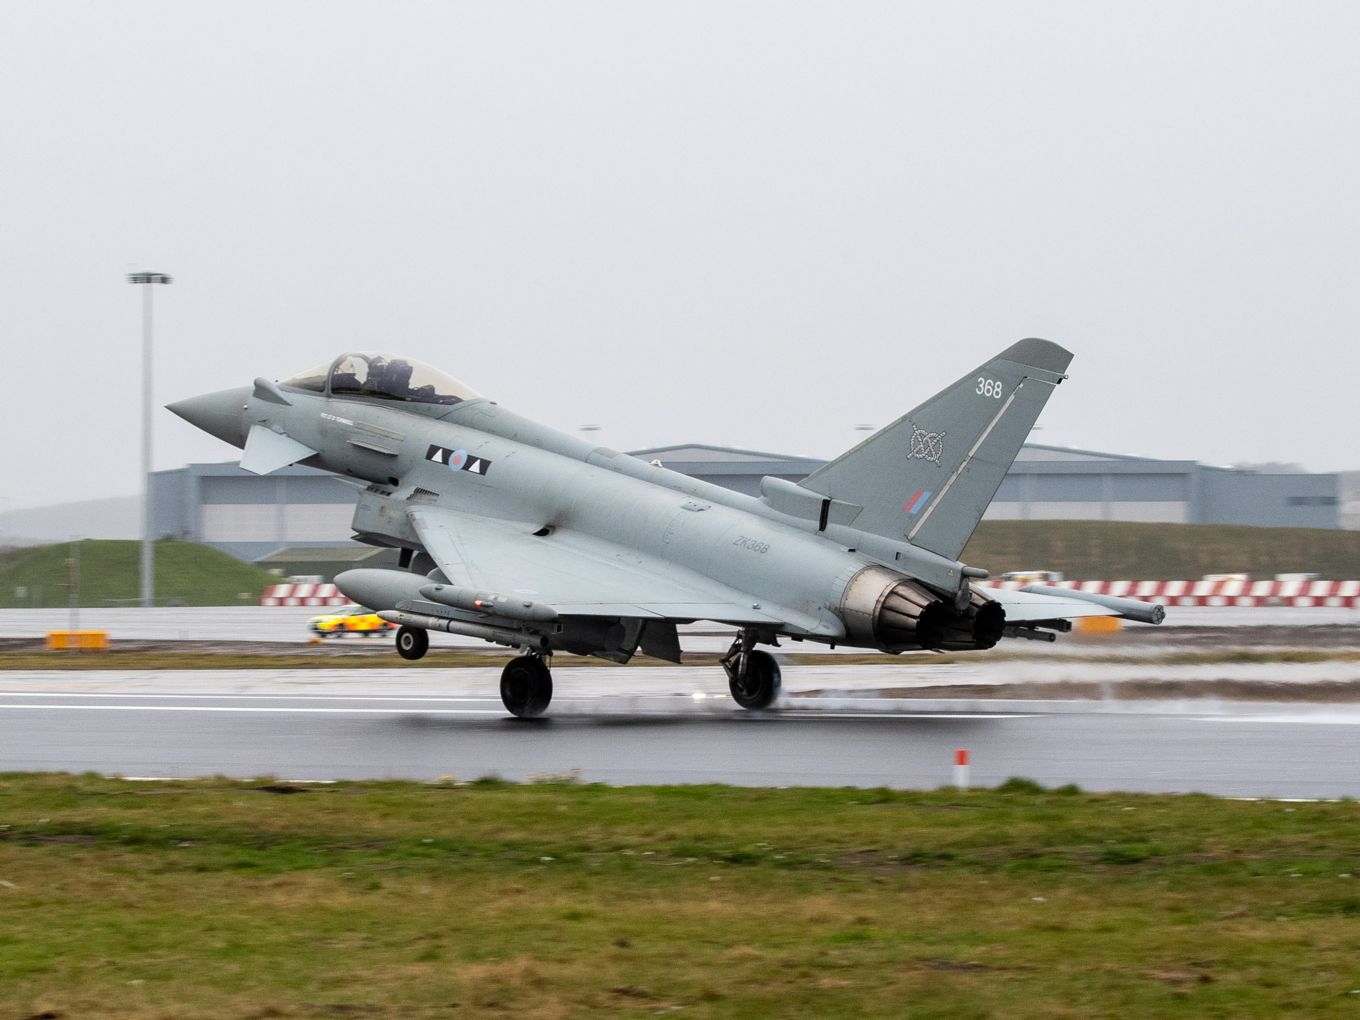 typhoon-lands-on-new-runway